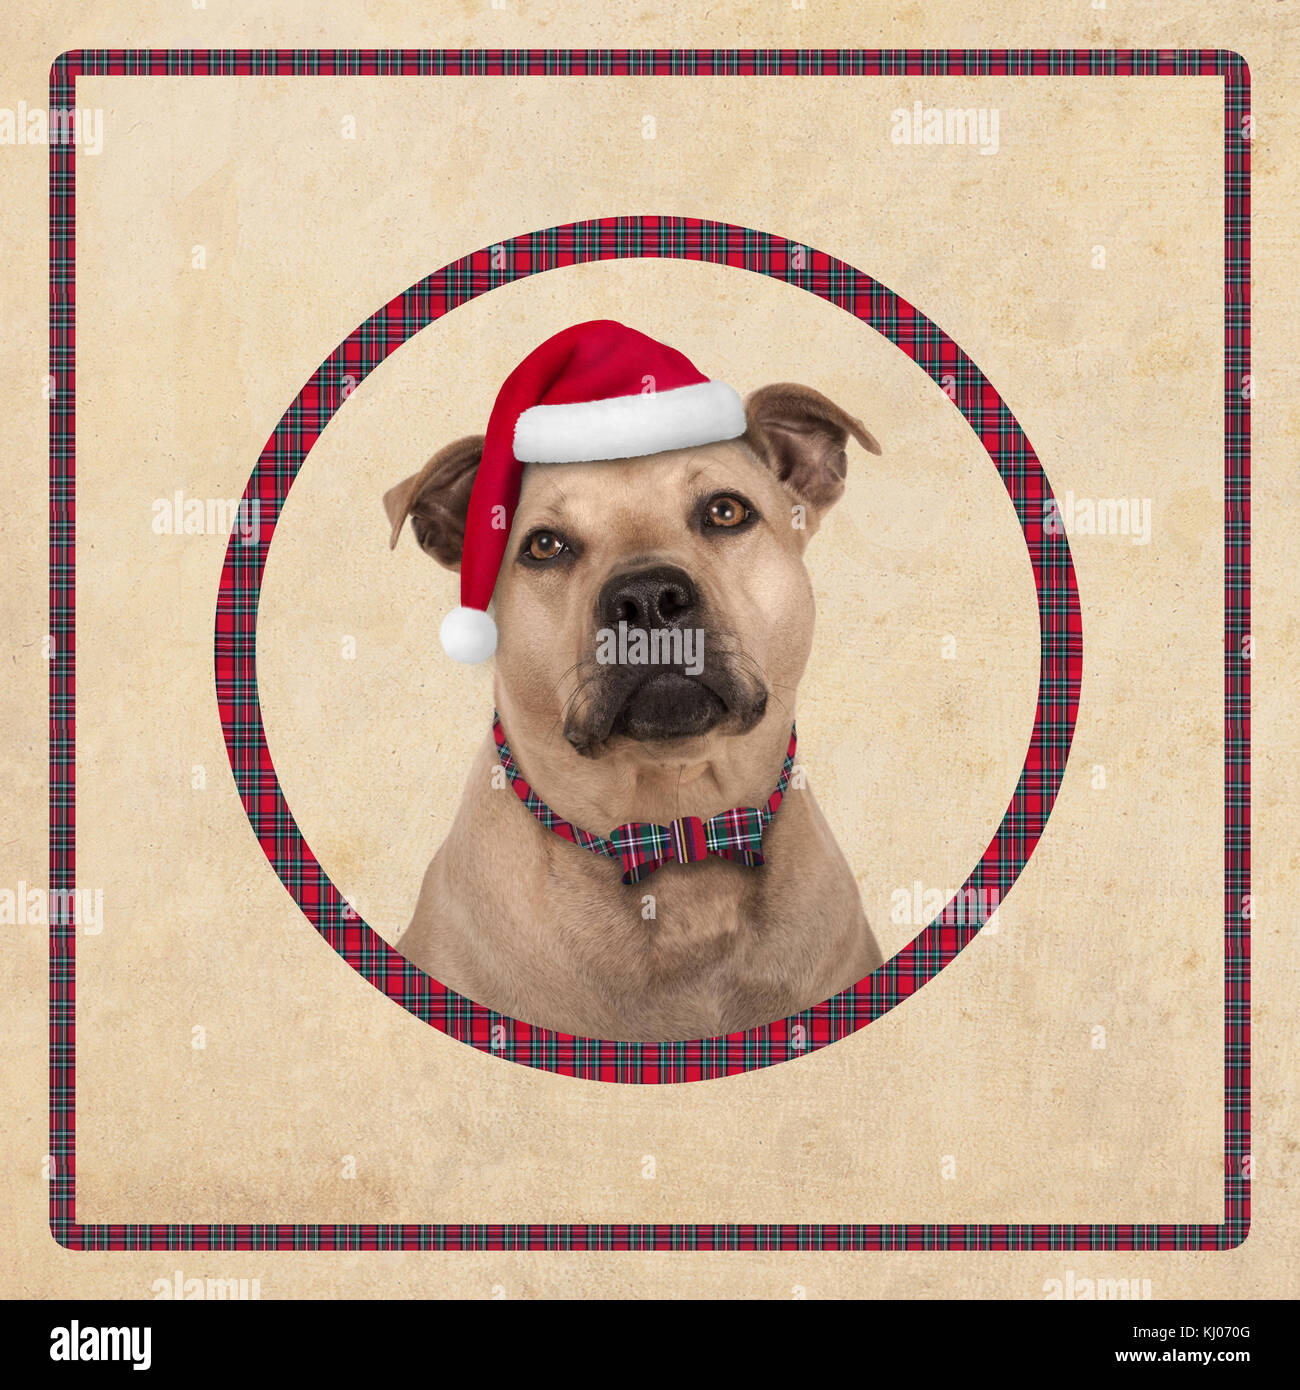 cute terrier dog in circle with red plaid pattern, on old vintage paper background, christmas card design - Stock Image